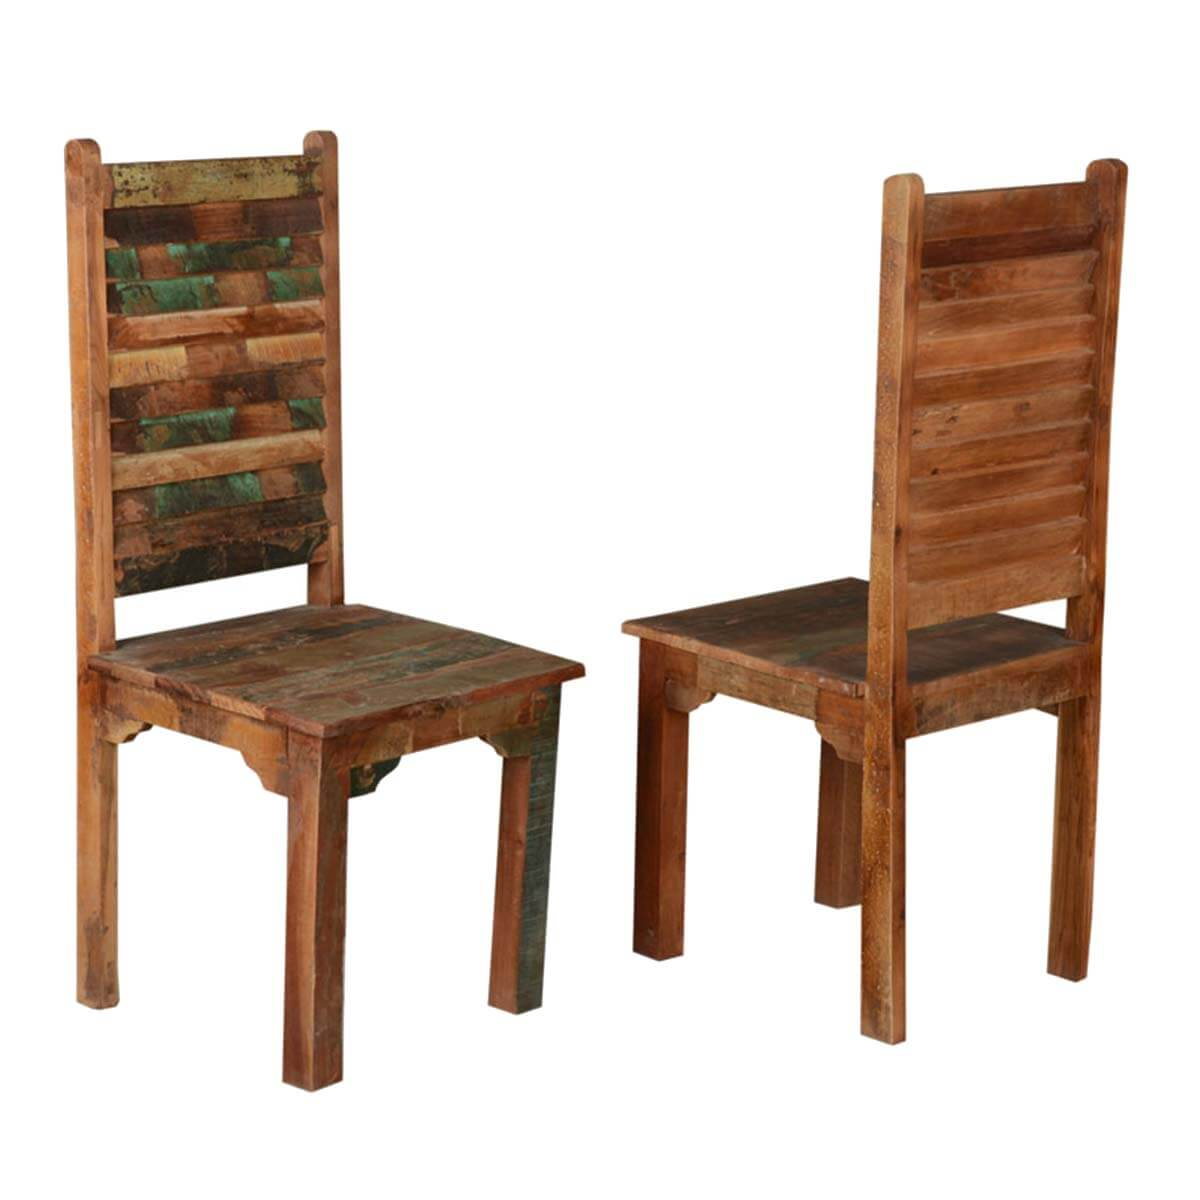 Rustic Dining Chairs Rustic Distressed Reclaimed Wood Multi Color Dining Chairs